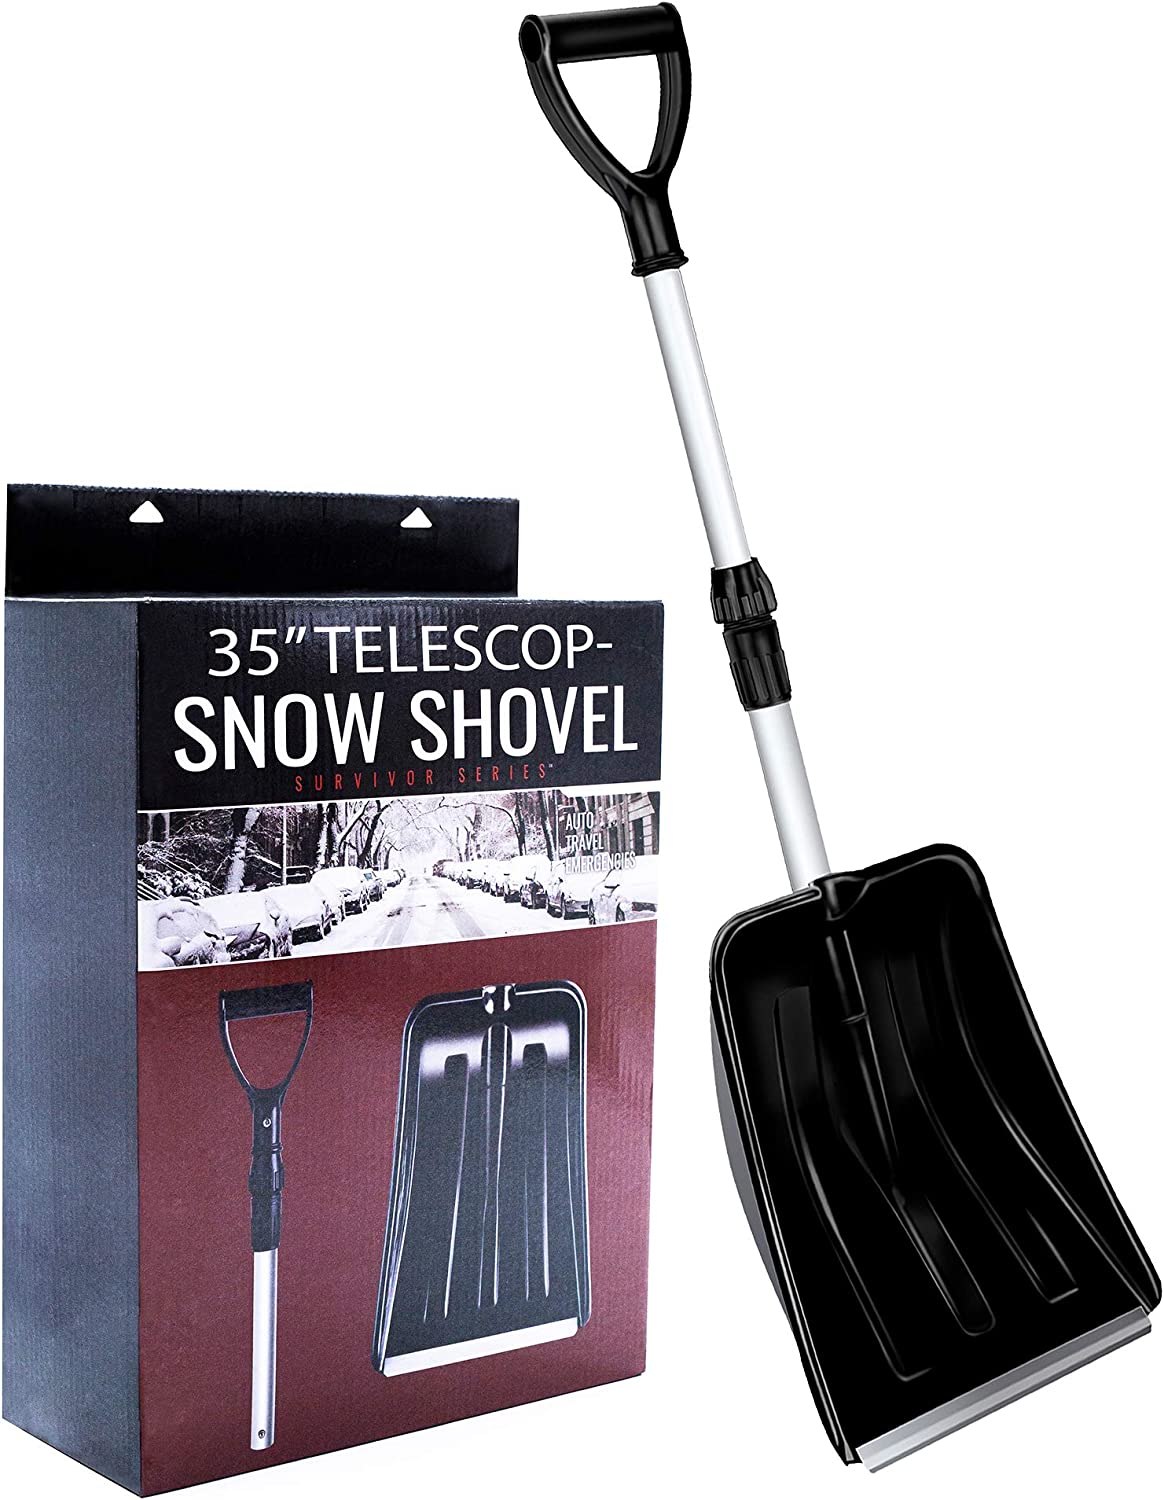 ROUENOK Snow Shovel, Compact Snow Shovel